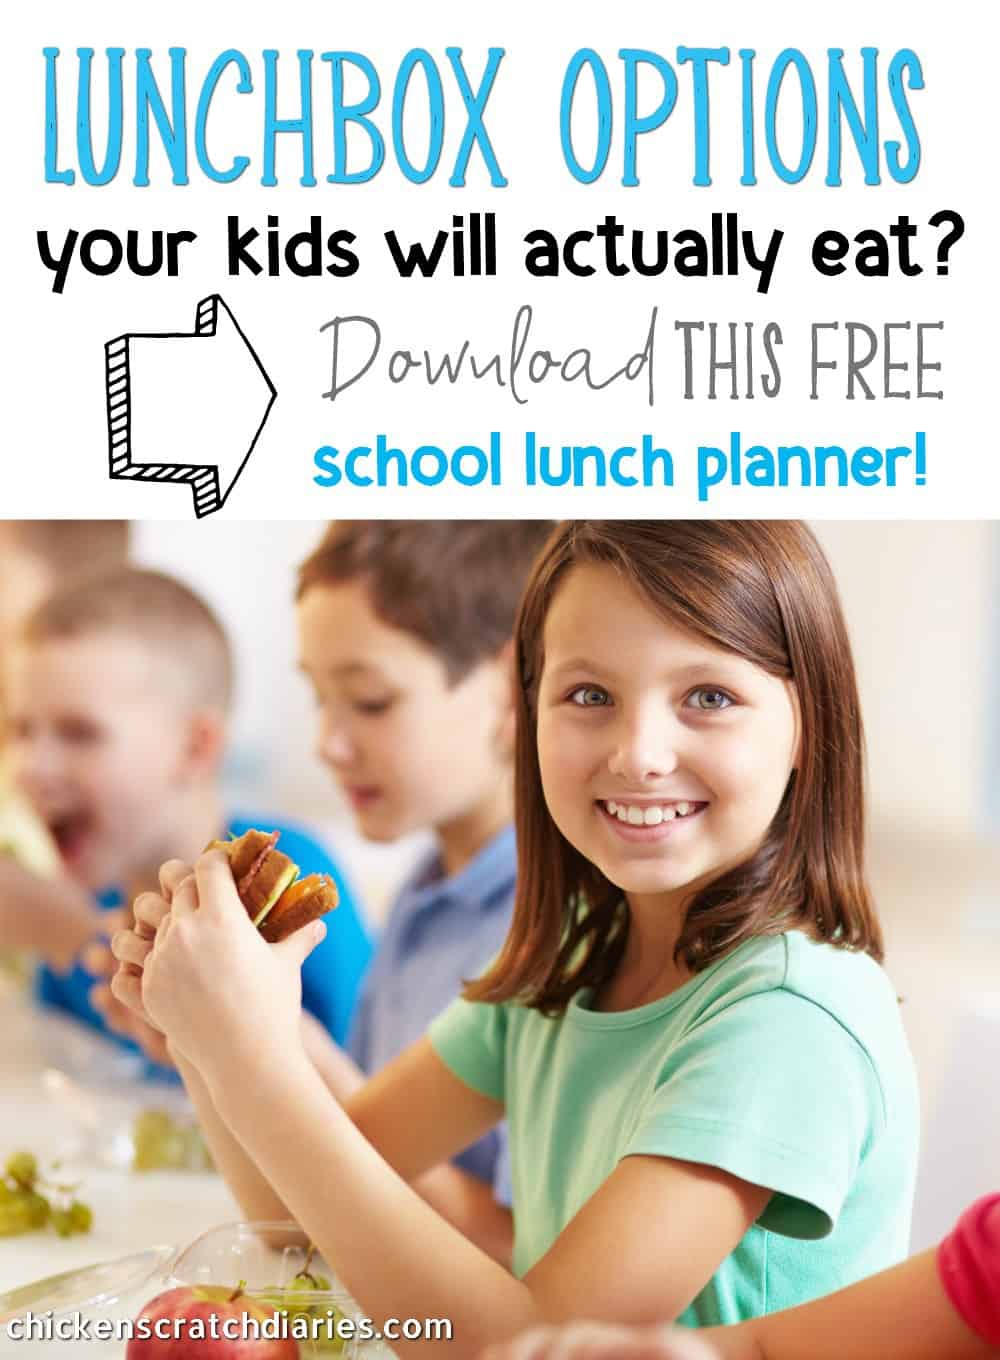 Back to School lunch ideas with options your kids will actually eat! BackToSchool #LunchBox #LunchIdeas #Kids